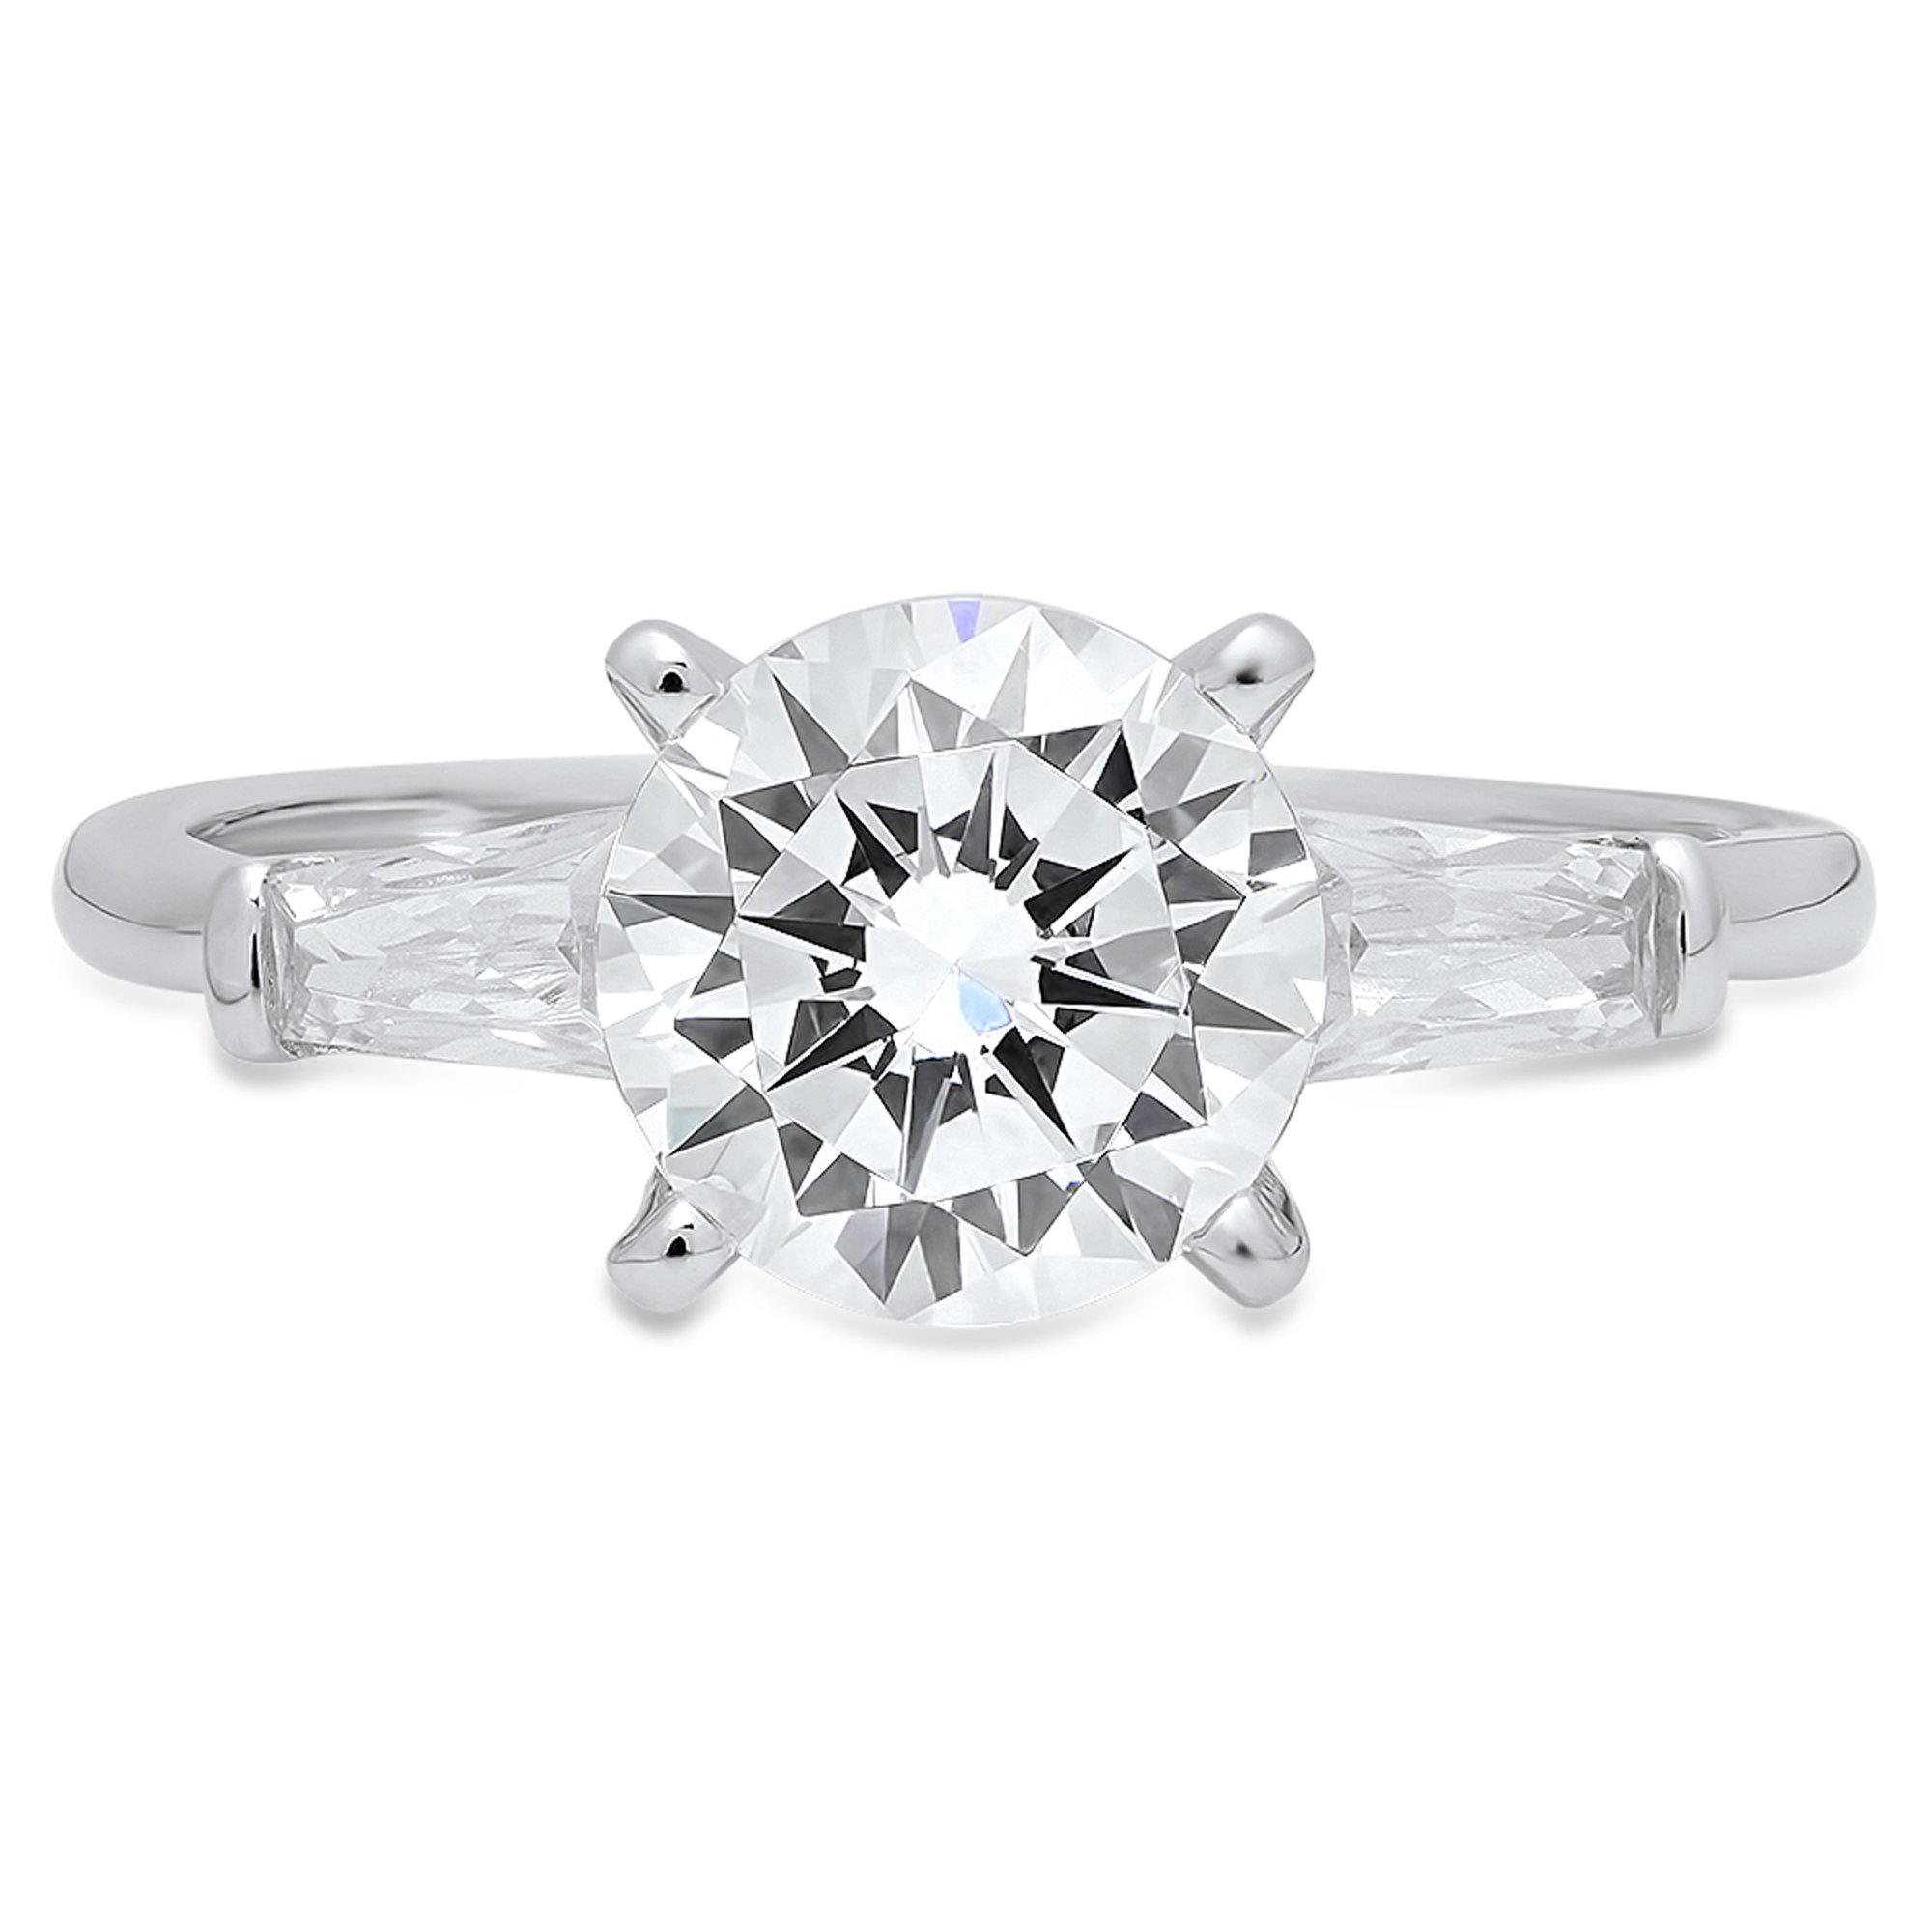 2.20 CT Round & Baguette Cut Solitaire 3-Stone Engagement Wedding Anniversary Promise Ring 14K White Gold, Size 7.5 Clara Pucci